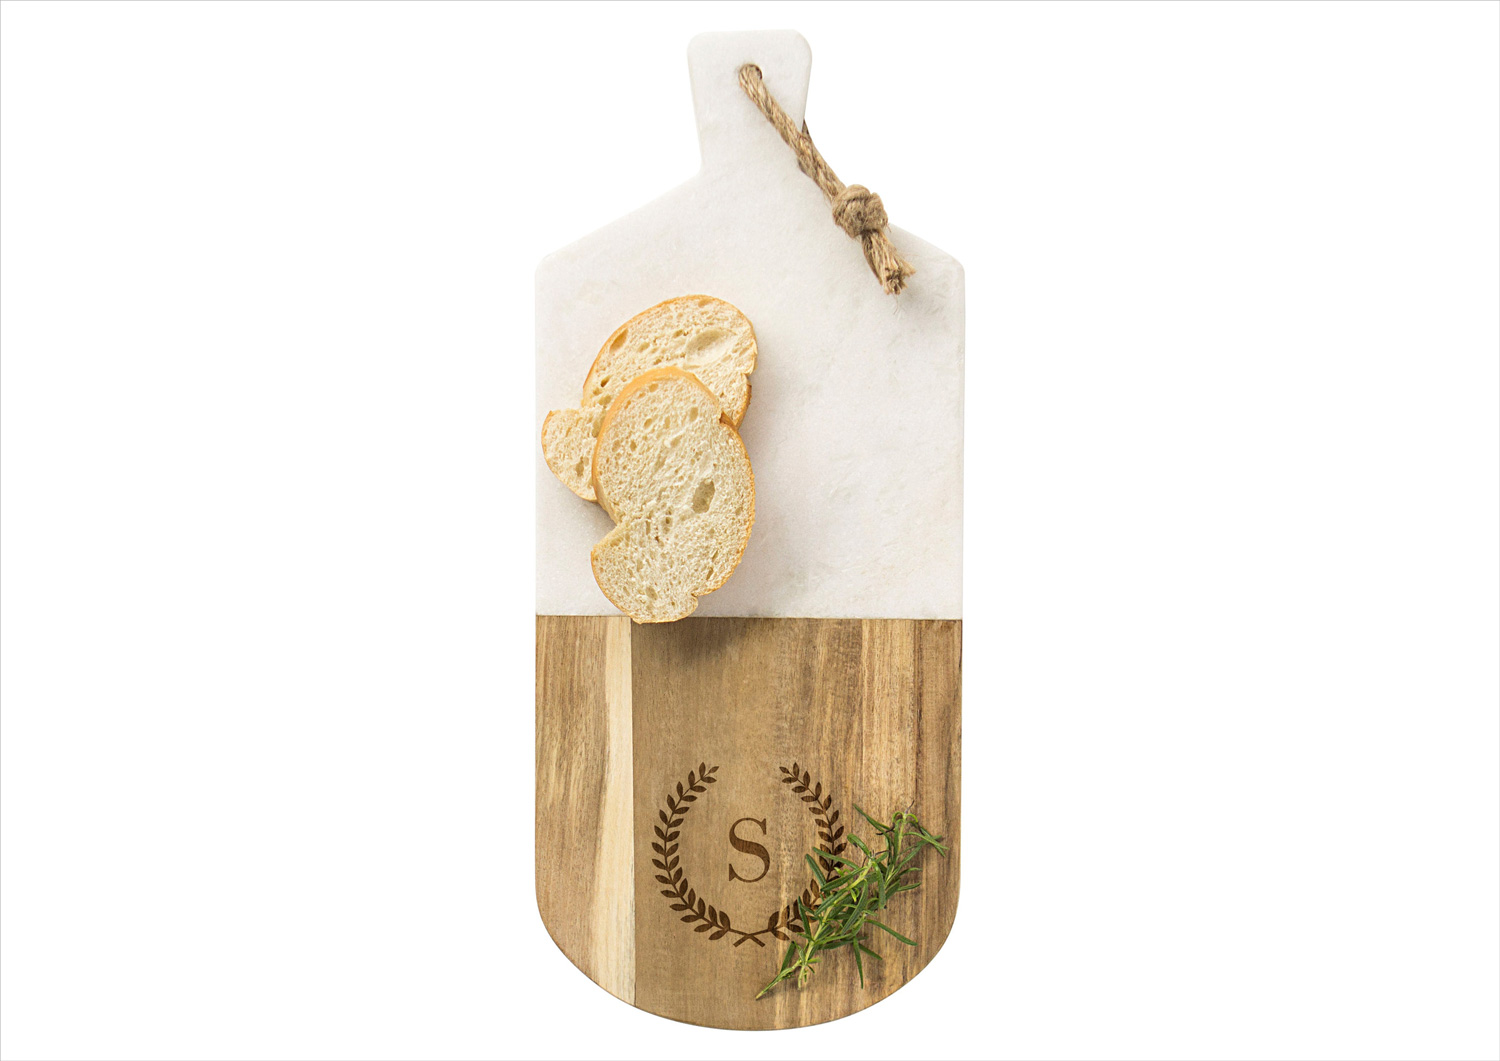 nordstrom anniversary sale monogram marble and wood serving board by cathy's concepts wedding gift ideas